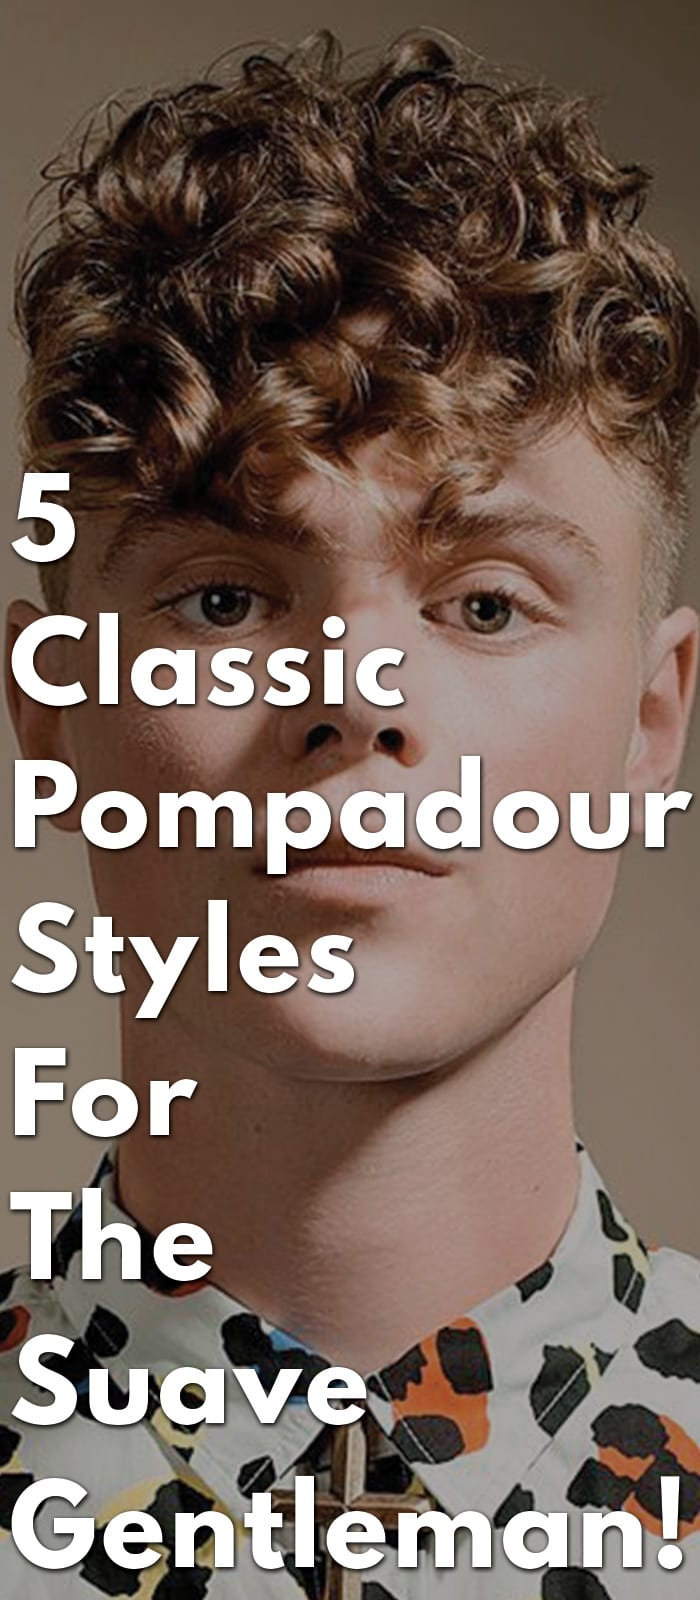 5-Classic-Pompadour-Styles-For-The-Suave-Gentleman!